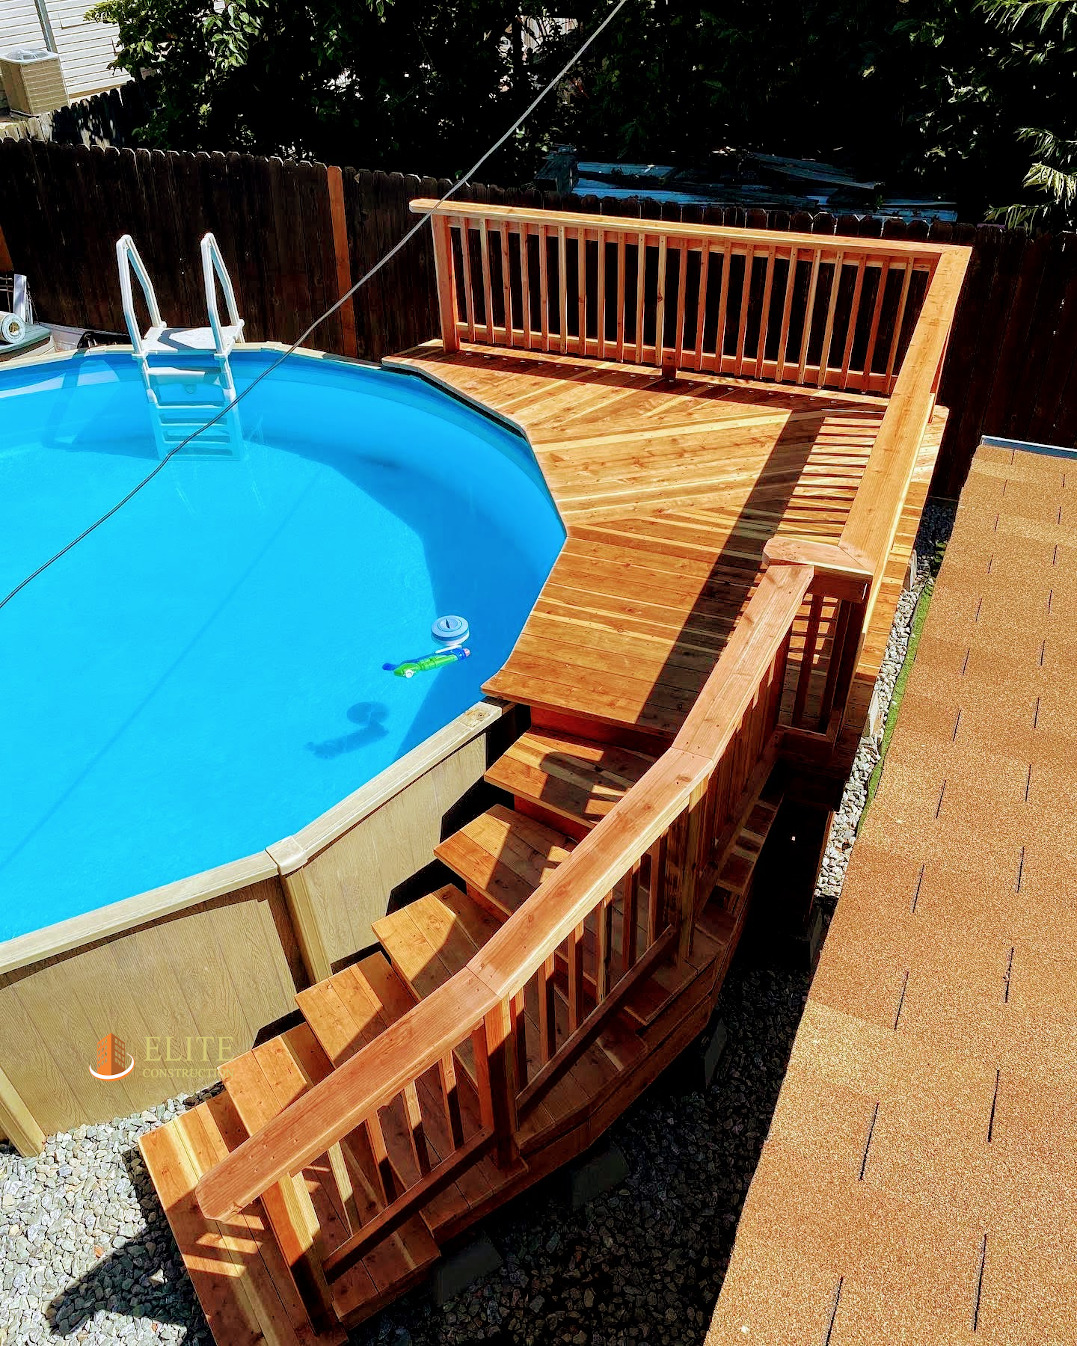 Above Ground Pool Deck Construction, How To Build A Raised Deck Around An Above Ground Pool